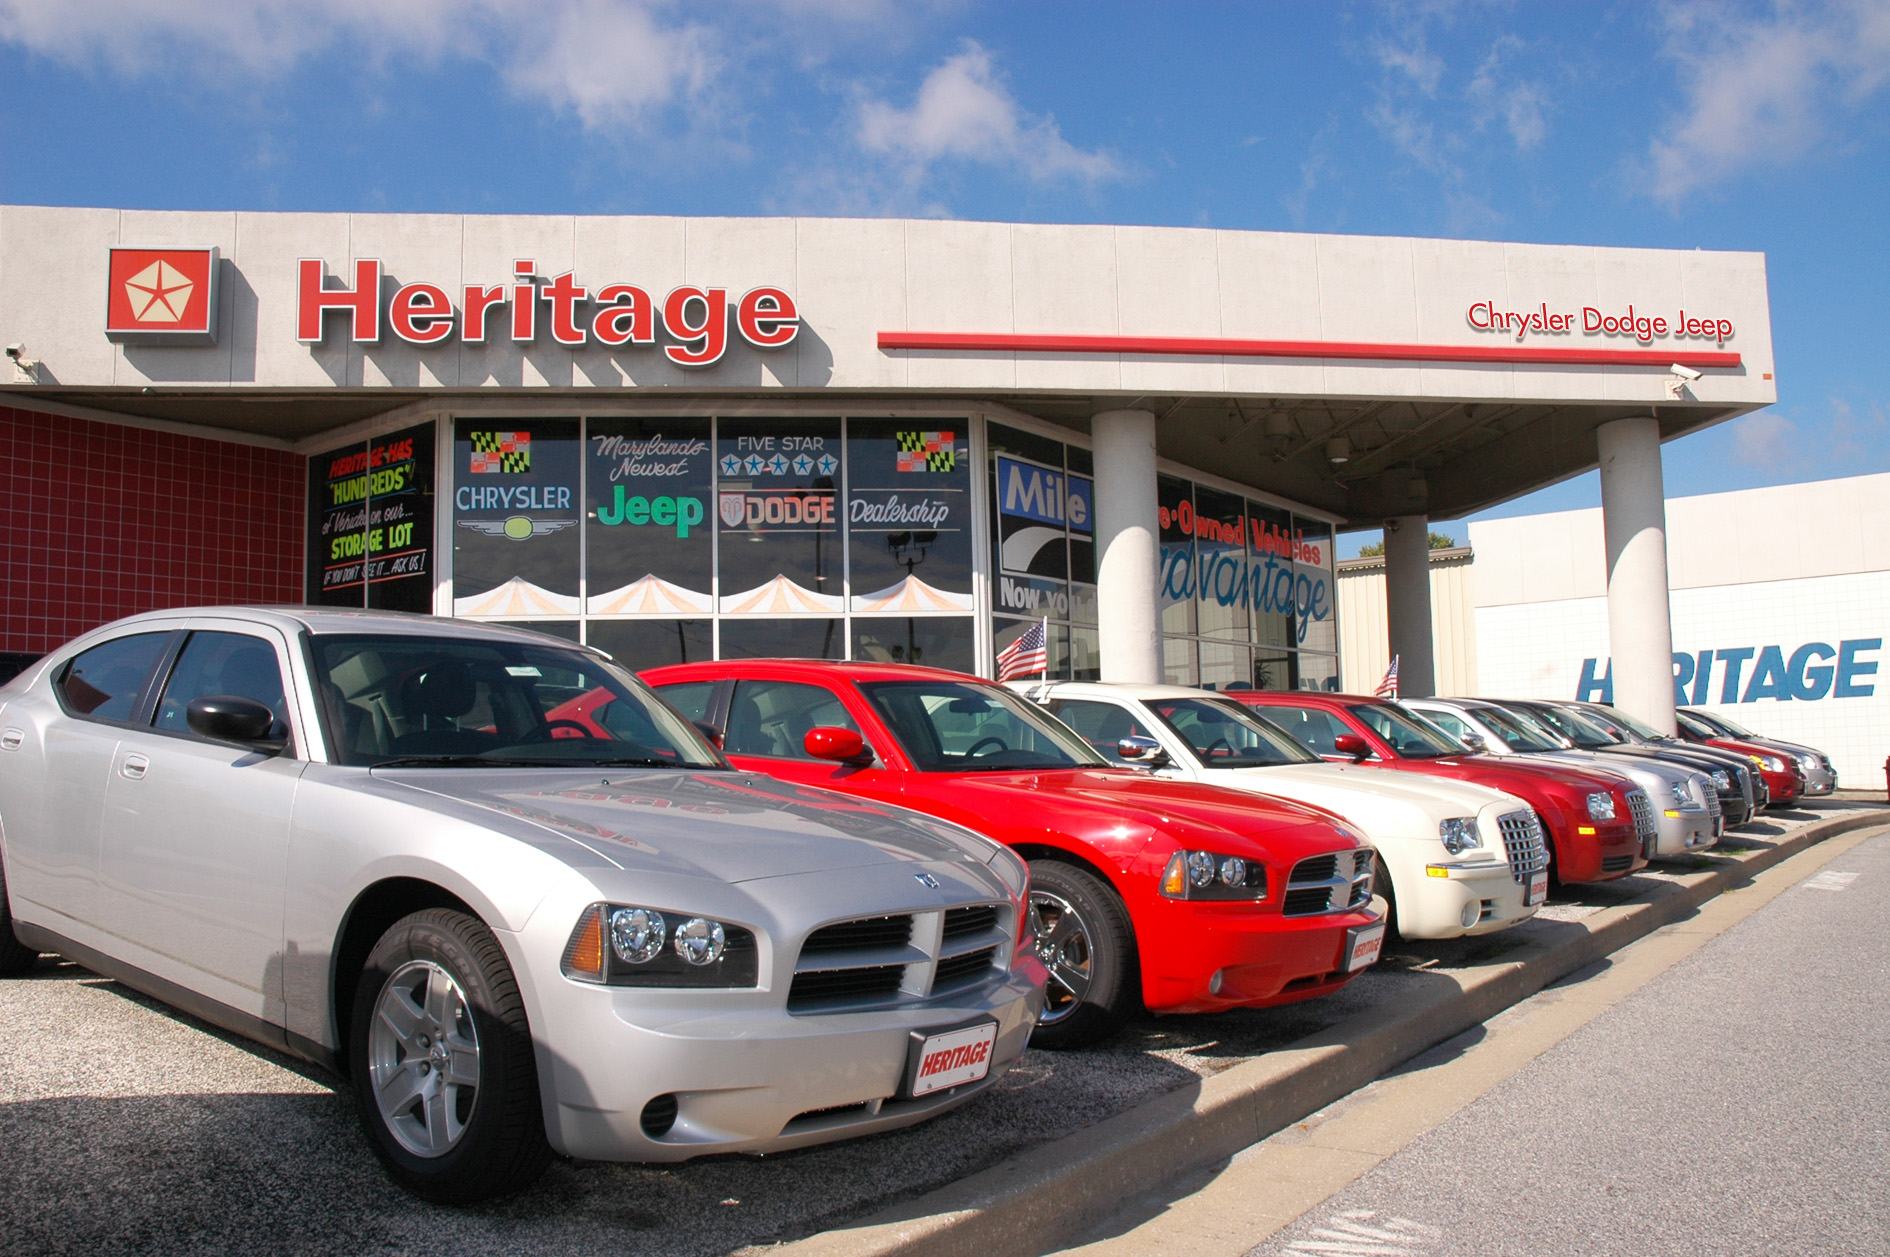 MileOne Heritage Chrysler Dodge Jeep Stores In Baltimore Receive - Chrysler jeep dodge dealer